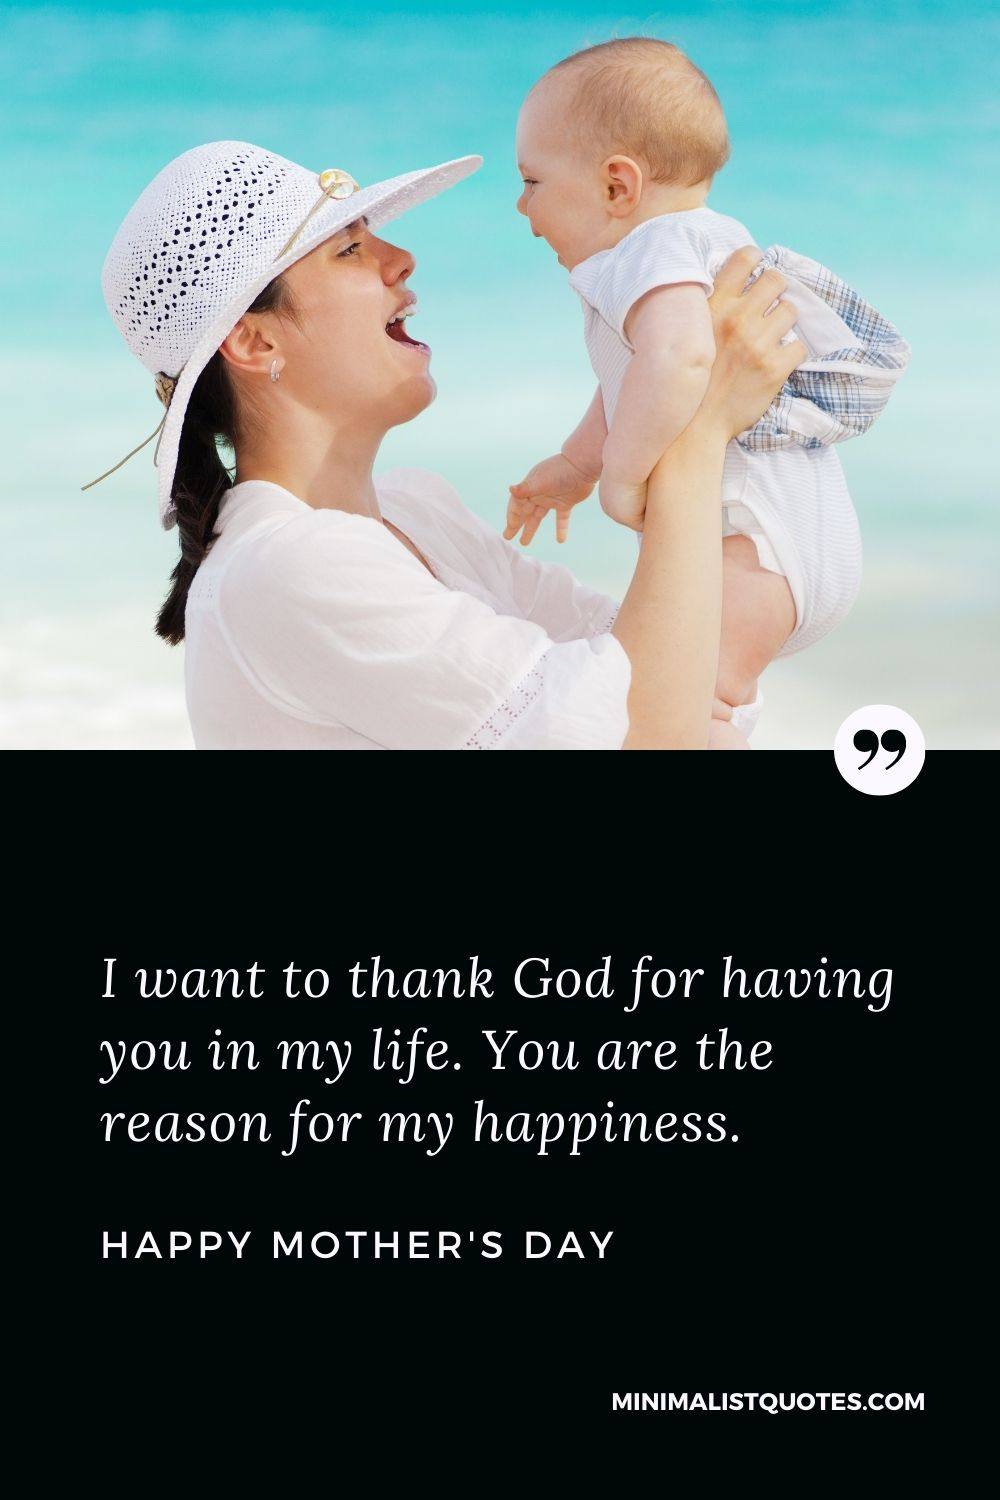 Mother's Day wish, message & quote with HD image: I want to thank God for having you in my life. You are the reason for my happiness.Happy Mother's Day!